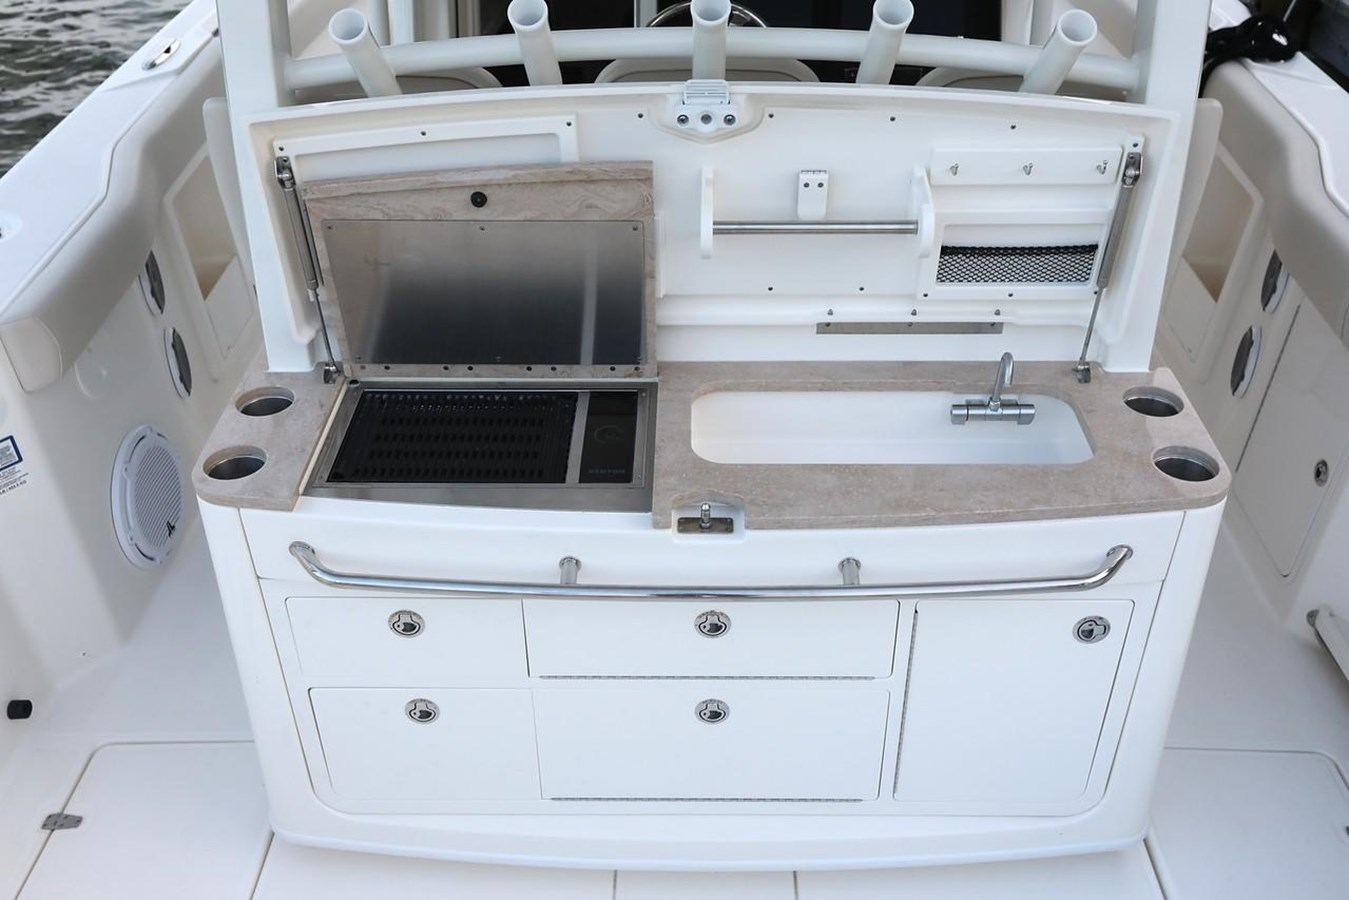 6871031_20181016072621031_1_XLARGE 2019 BOSTON WHALER  Center Console 2843989